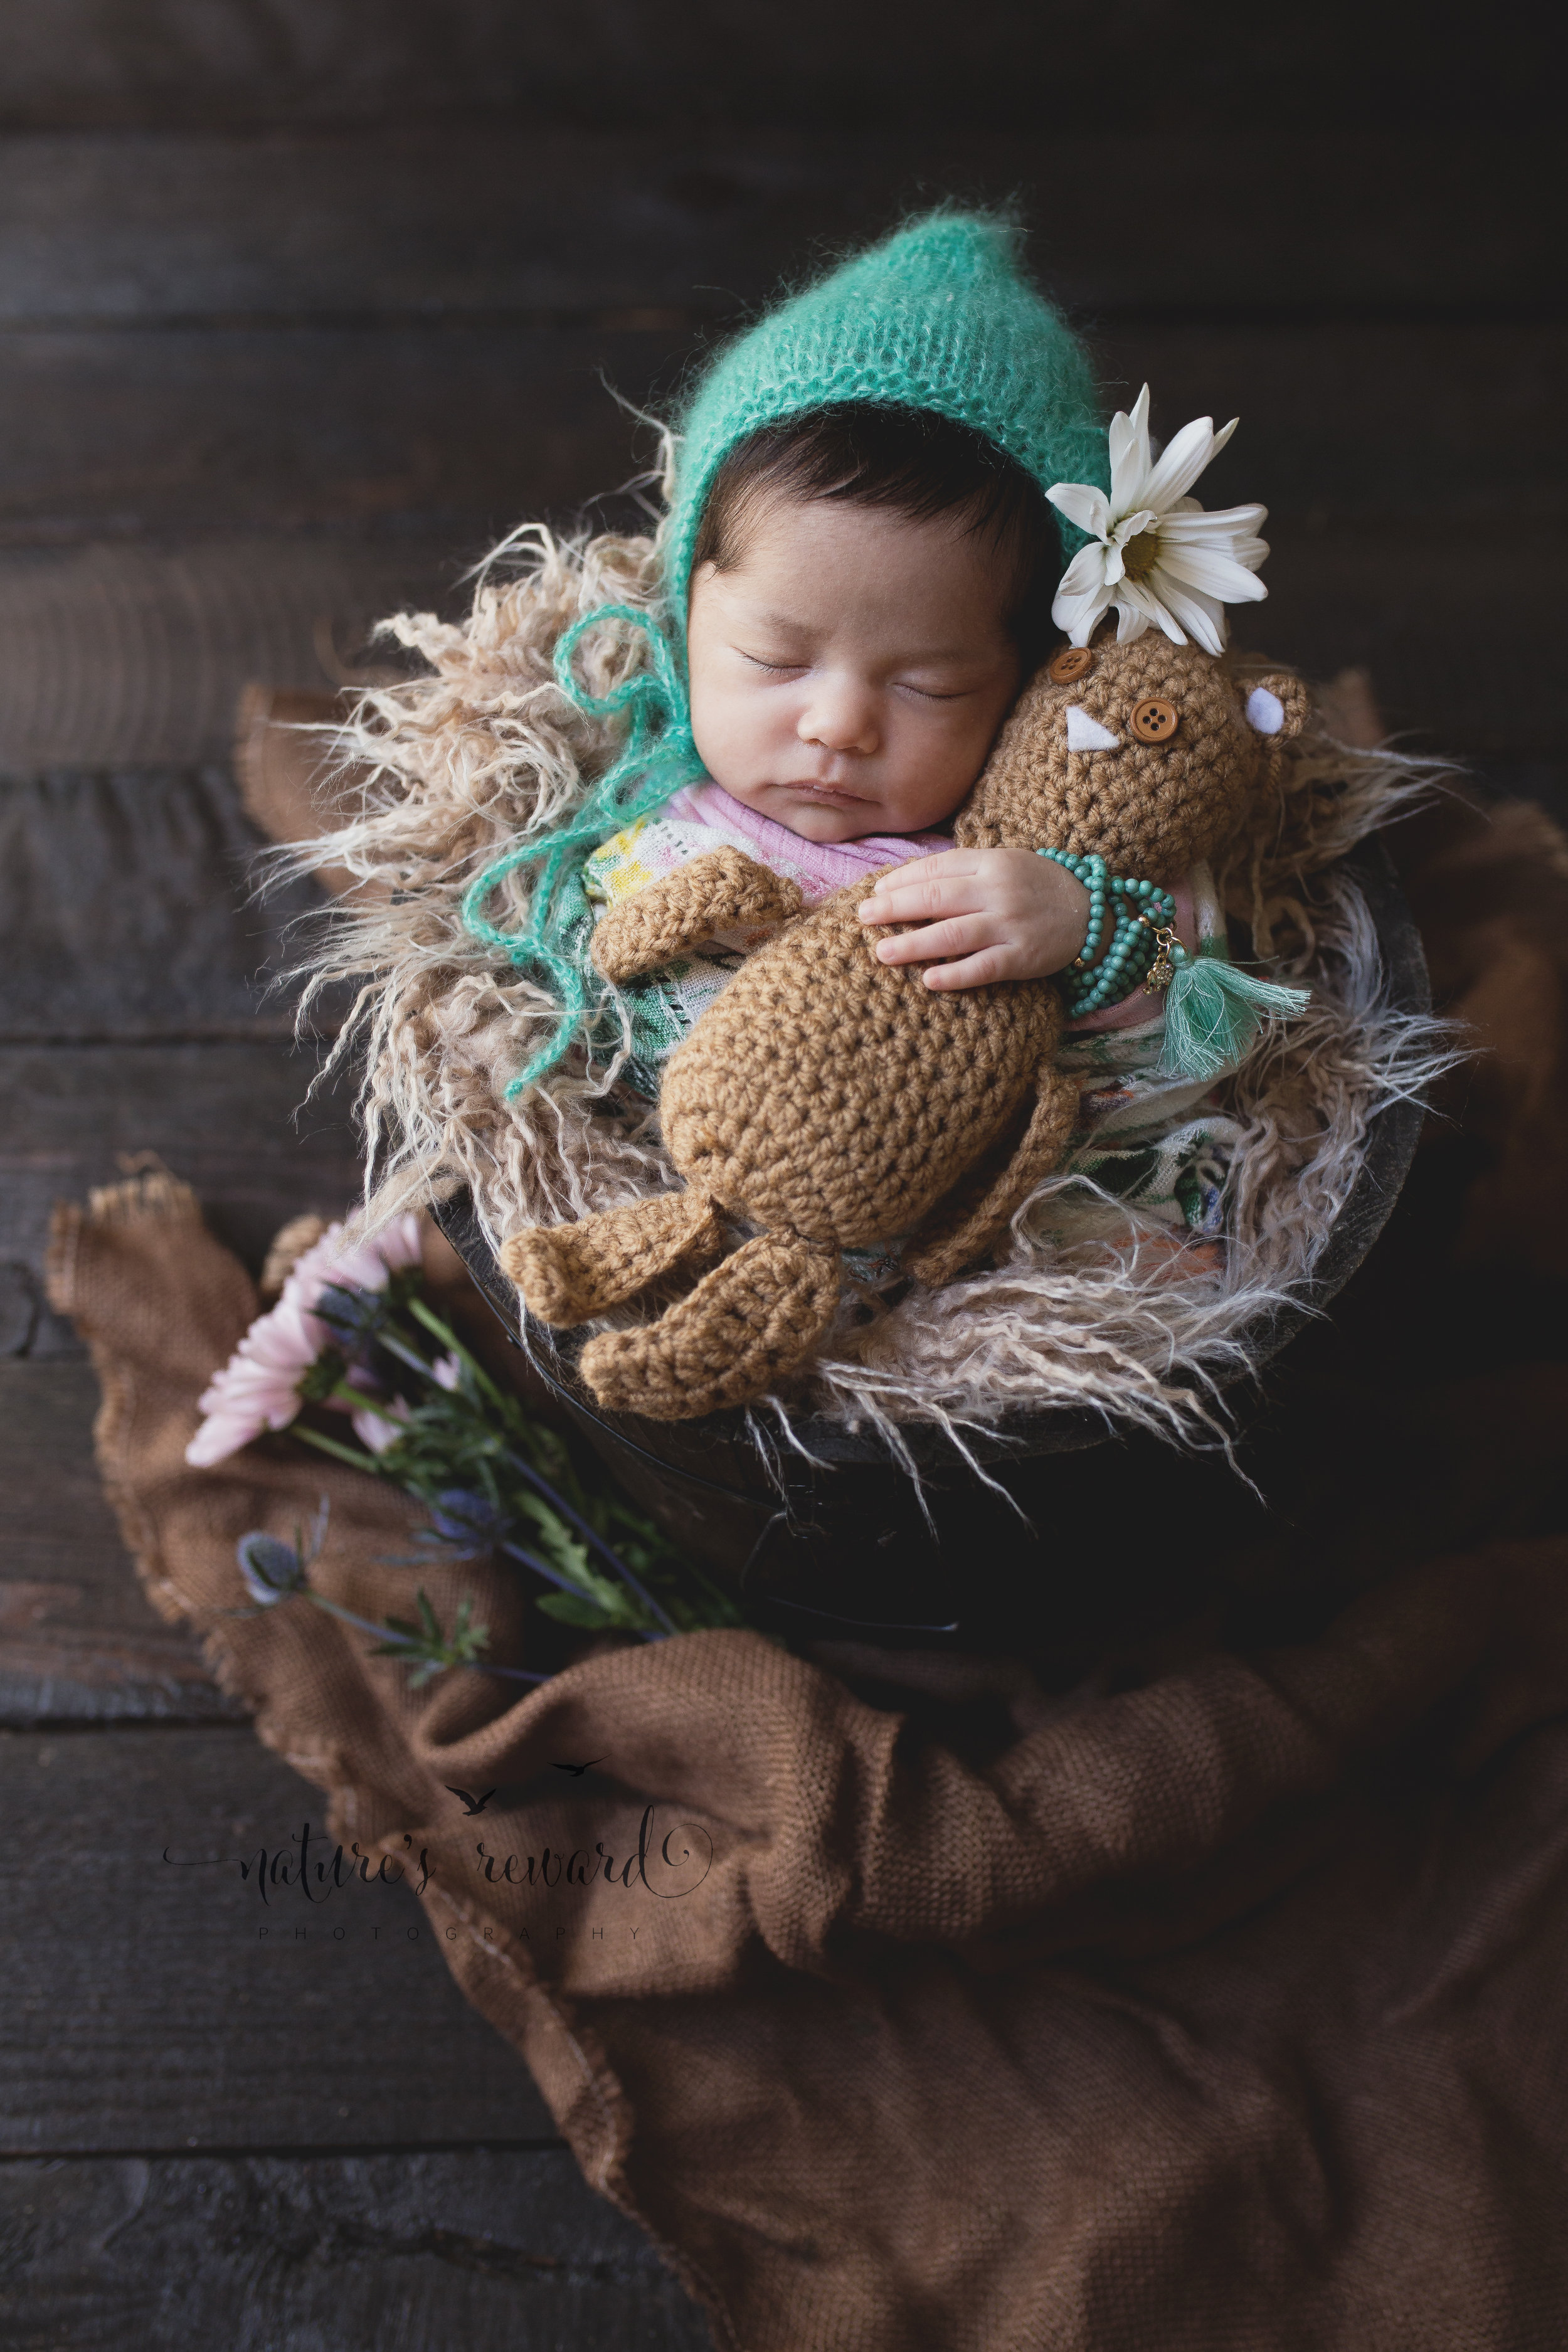 And the light and the burlap, the flowers, the daisy in her bonnet and the teddy pulling in the browns and then the magic happened in this newborn image.Image by Nature's Reward Photography